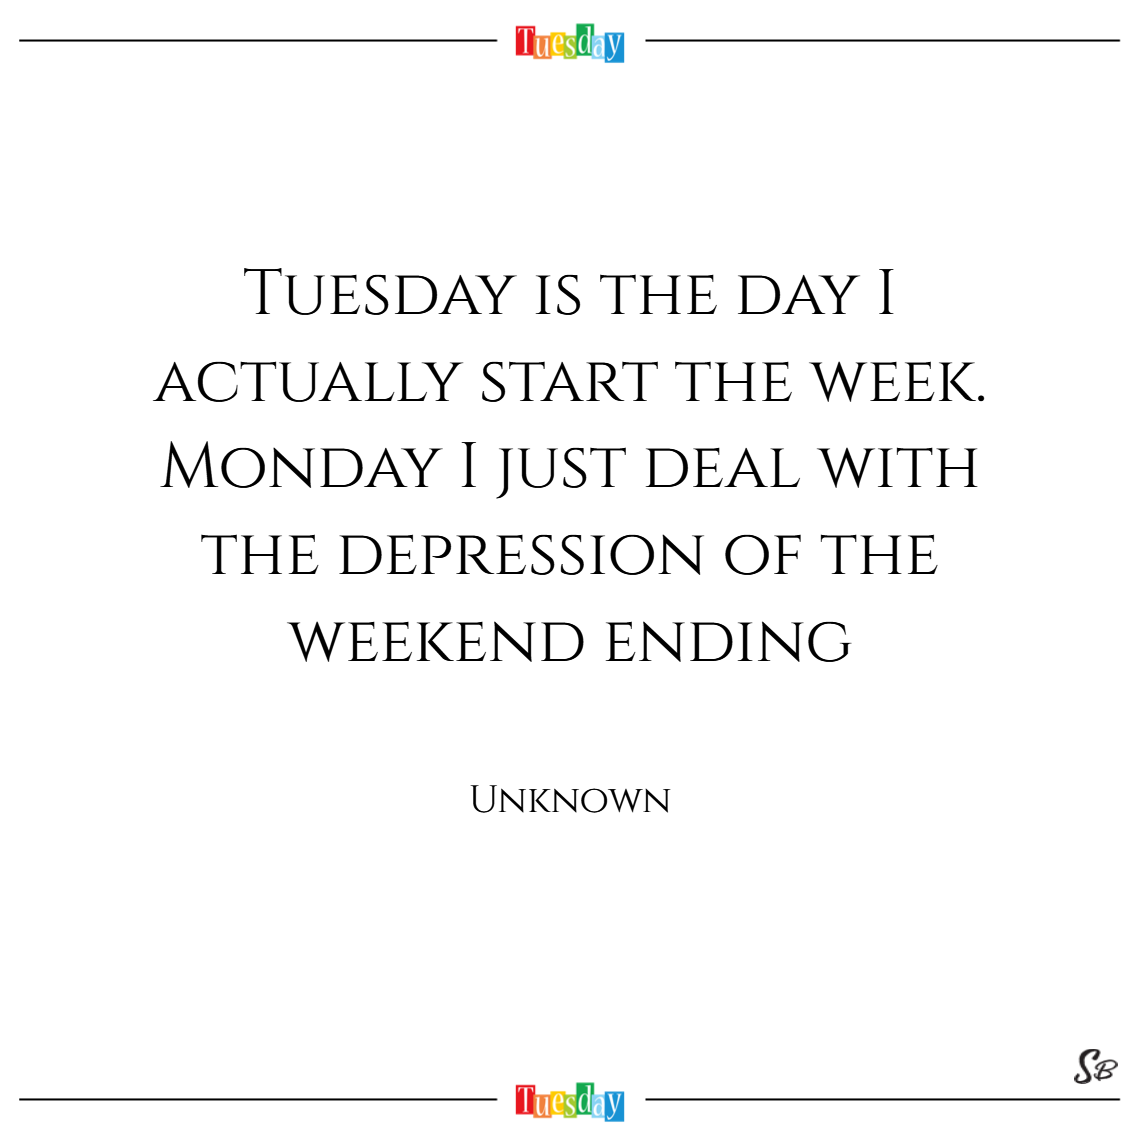 Tuesday is the day i actually start the week. monday i just deal with the depression of the weekend ending. – unknown